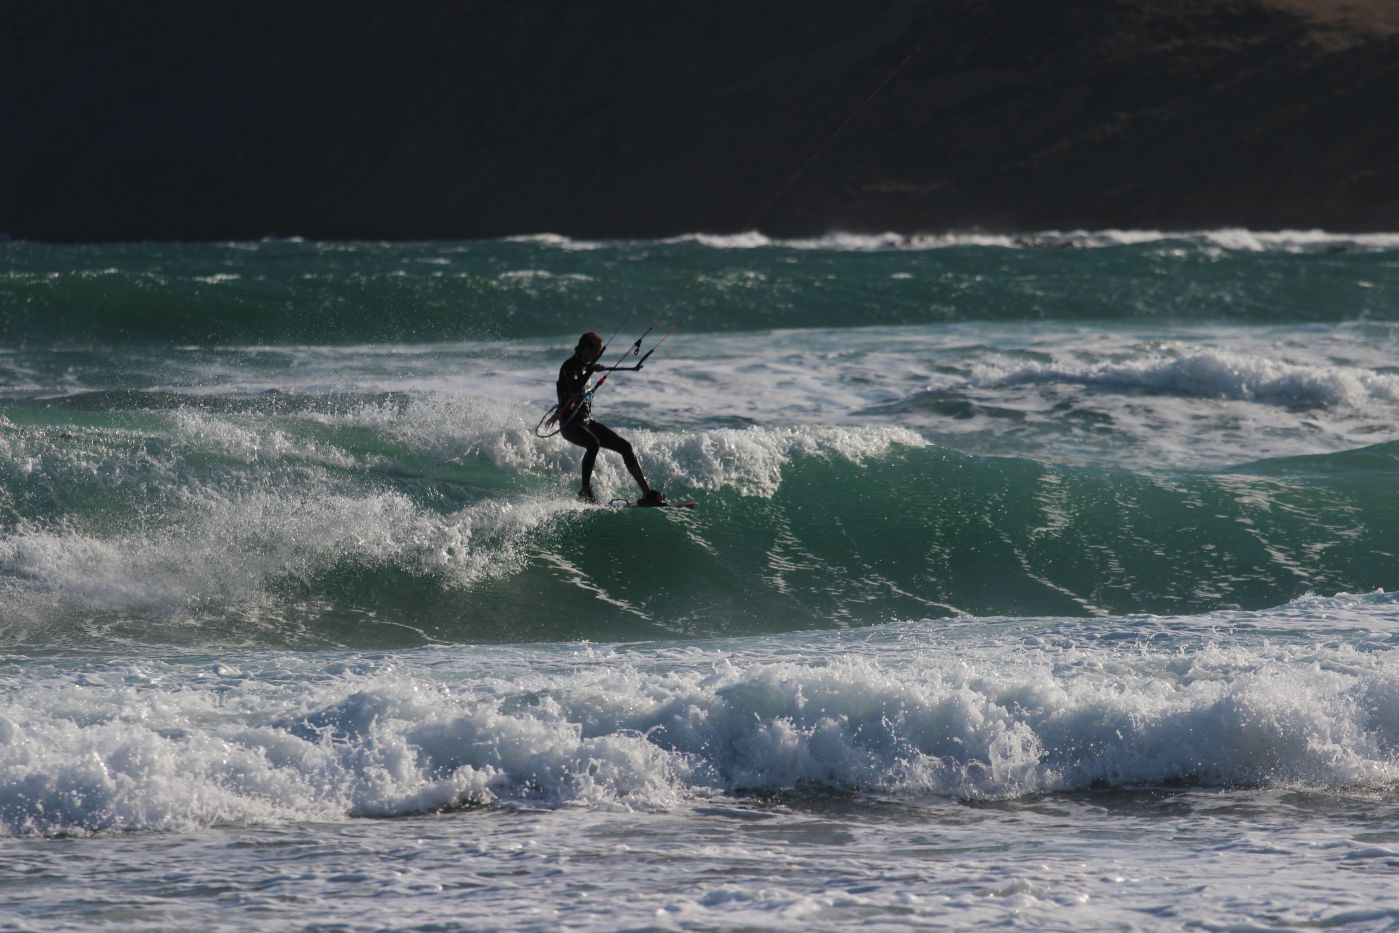 Kitesurfing on the waves at Gomati